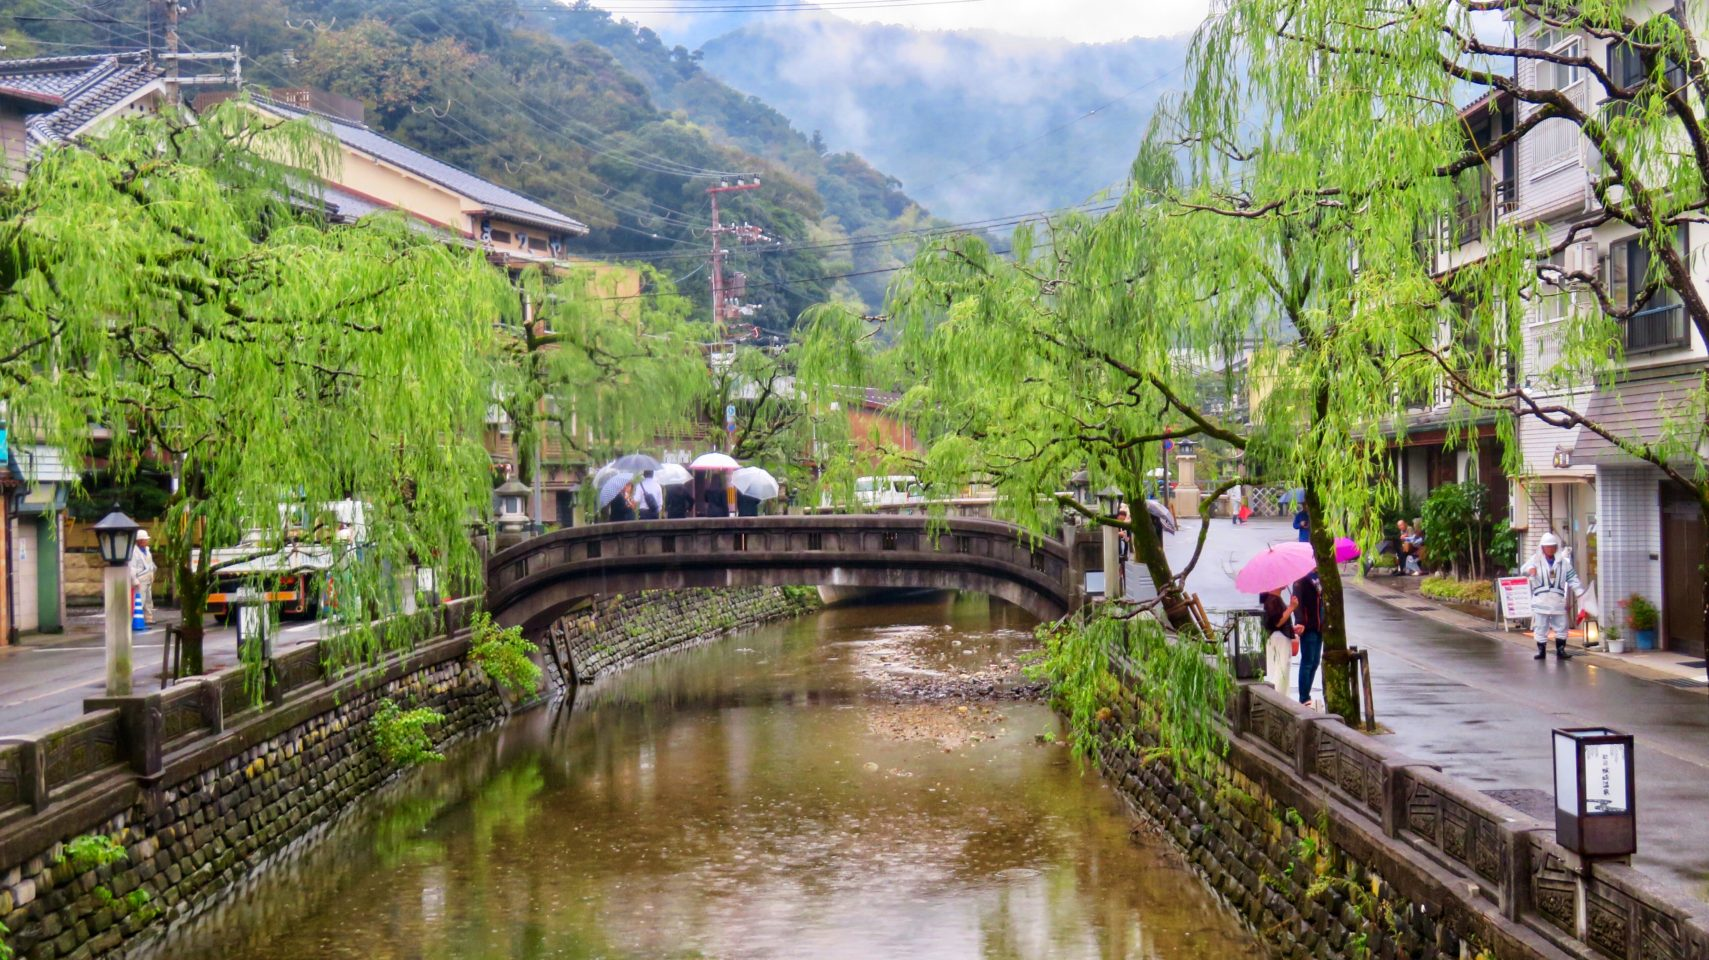 Japan Favorite Experiences ~ The Hot Springs town of Kinosaki Onsen in Japan